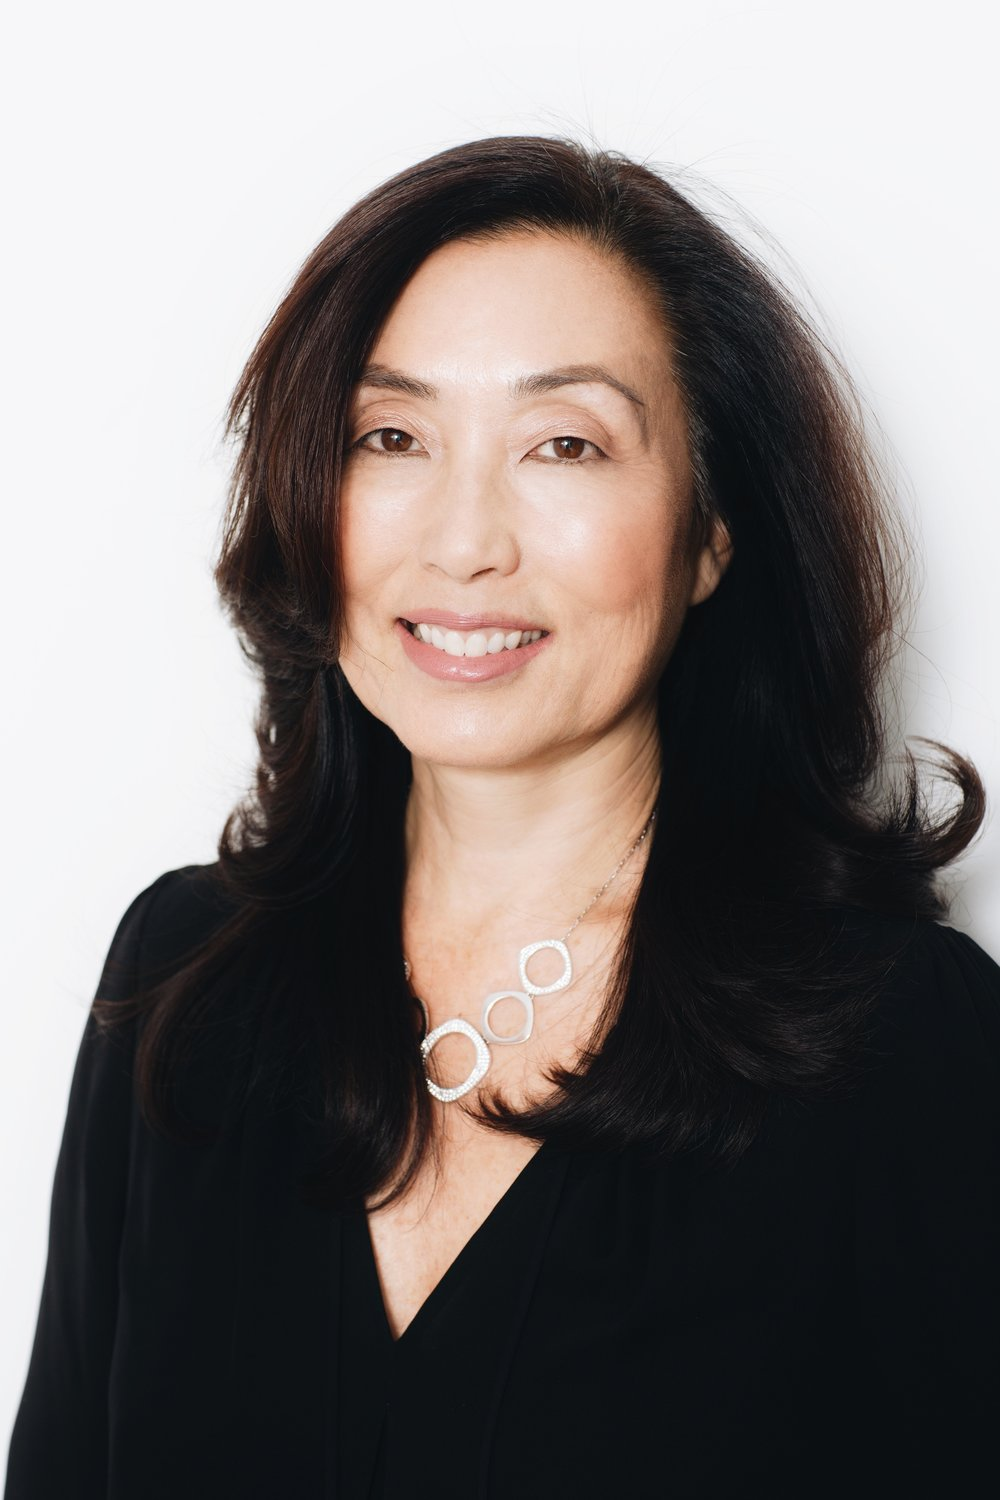 """Stacey Miyamoto    """"Love what you do and you'll never work a day in your life."""" That was the advice Stacey took when she started CMM in 2000. Her goal? To create a team that had the same passion for their work, their colleagues and their clients as she did. CMM is the culmination of that dream.  Today, the company that was started in Los Angeles is now headquartered in Soho and boasts full-service PR and Social Media teams —filled with enterprising and inspired creatives, entrepreneurs, storytellers, experientialists and brand strategists — who are fueled by imagination and opportunity rather than template thinking.   Never complacent, Stacey embarked upon another adventure: sharing her passions —Including SCUBA, skiing, wine (well maybe not yet) and traveling to exotic destinations such as Madagascar, Sri Lanka, India, Zimbabwe, Botswana, Egypt and Zanzibar— with her daughter Sophia (oh, and her husband too).Another dream come true."""